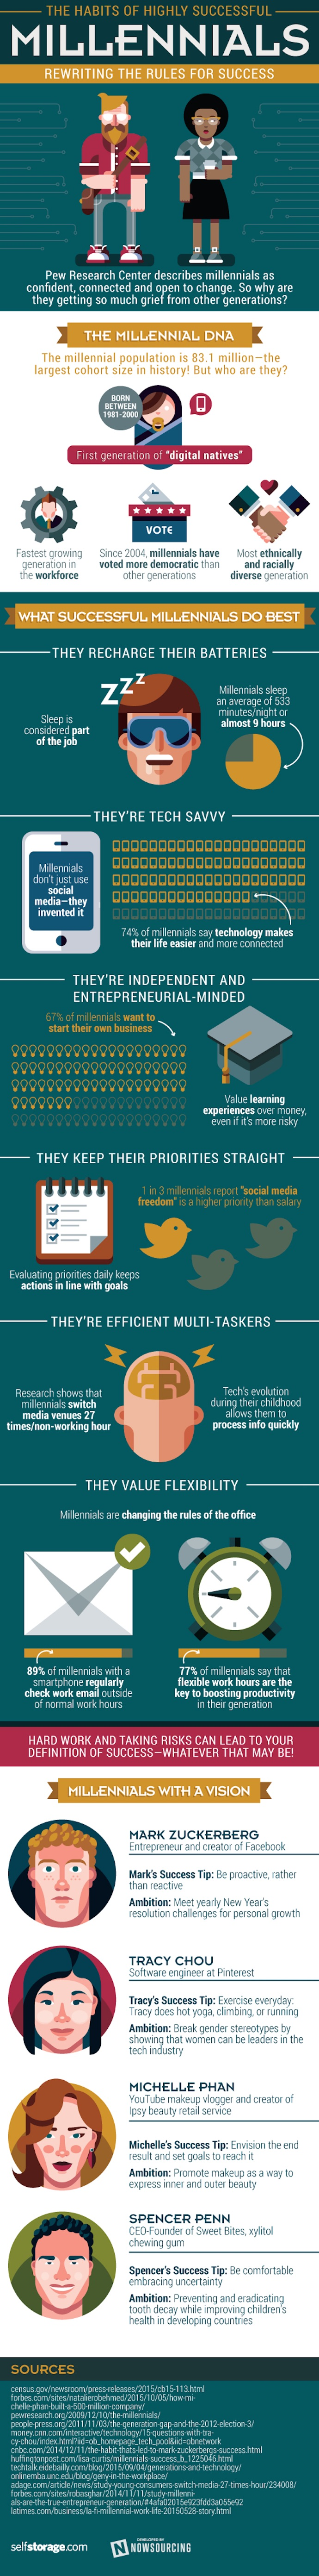 The-Habits-of-Highly-Successful-Millennials-Infographic